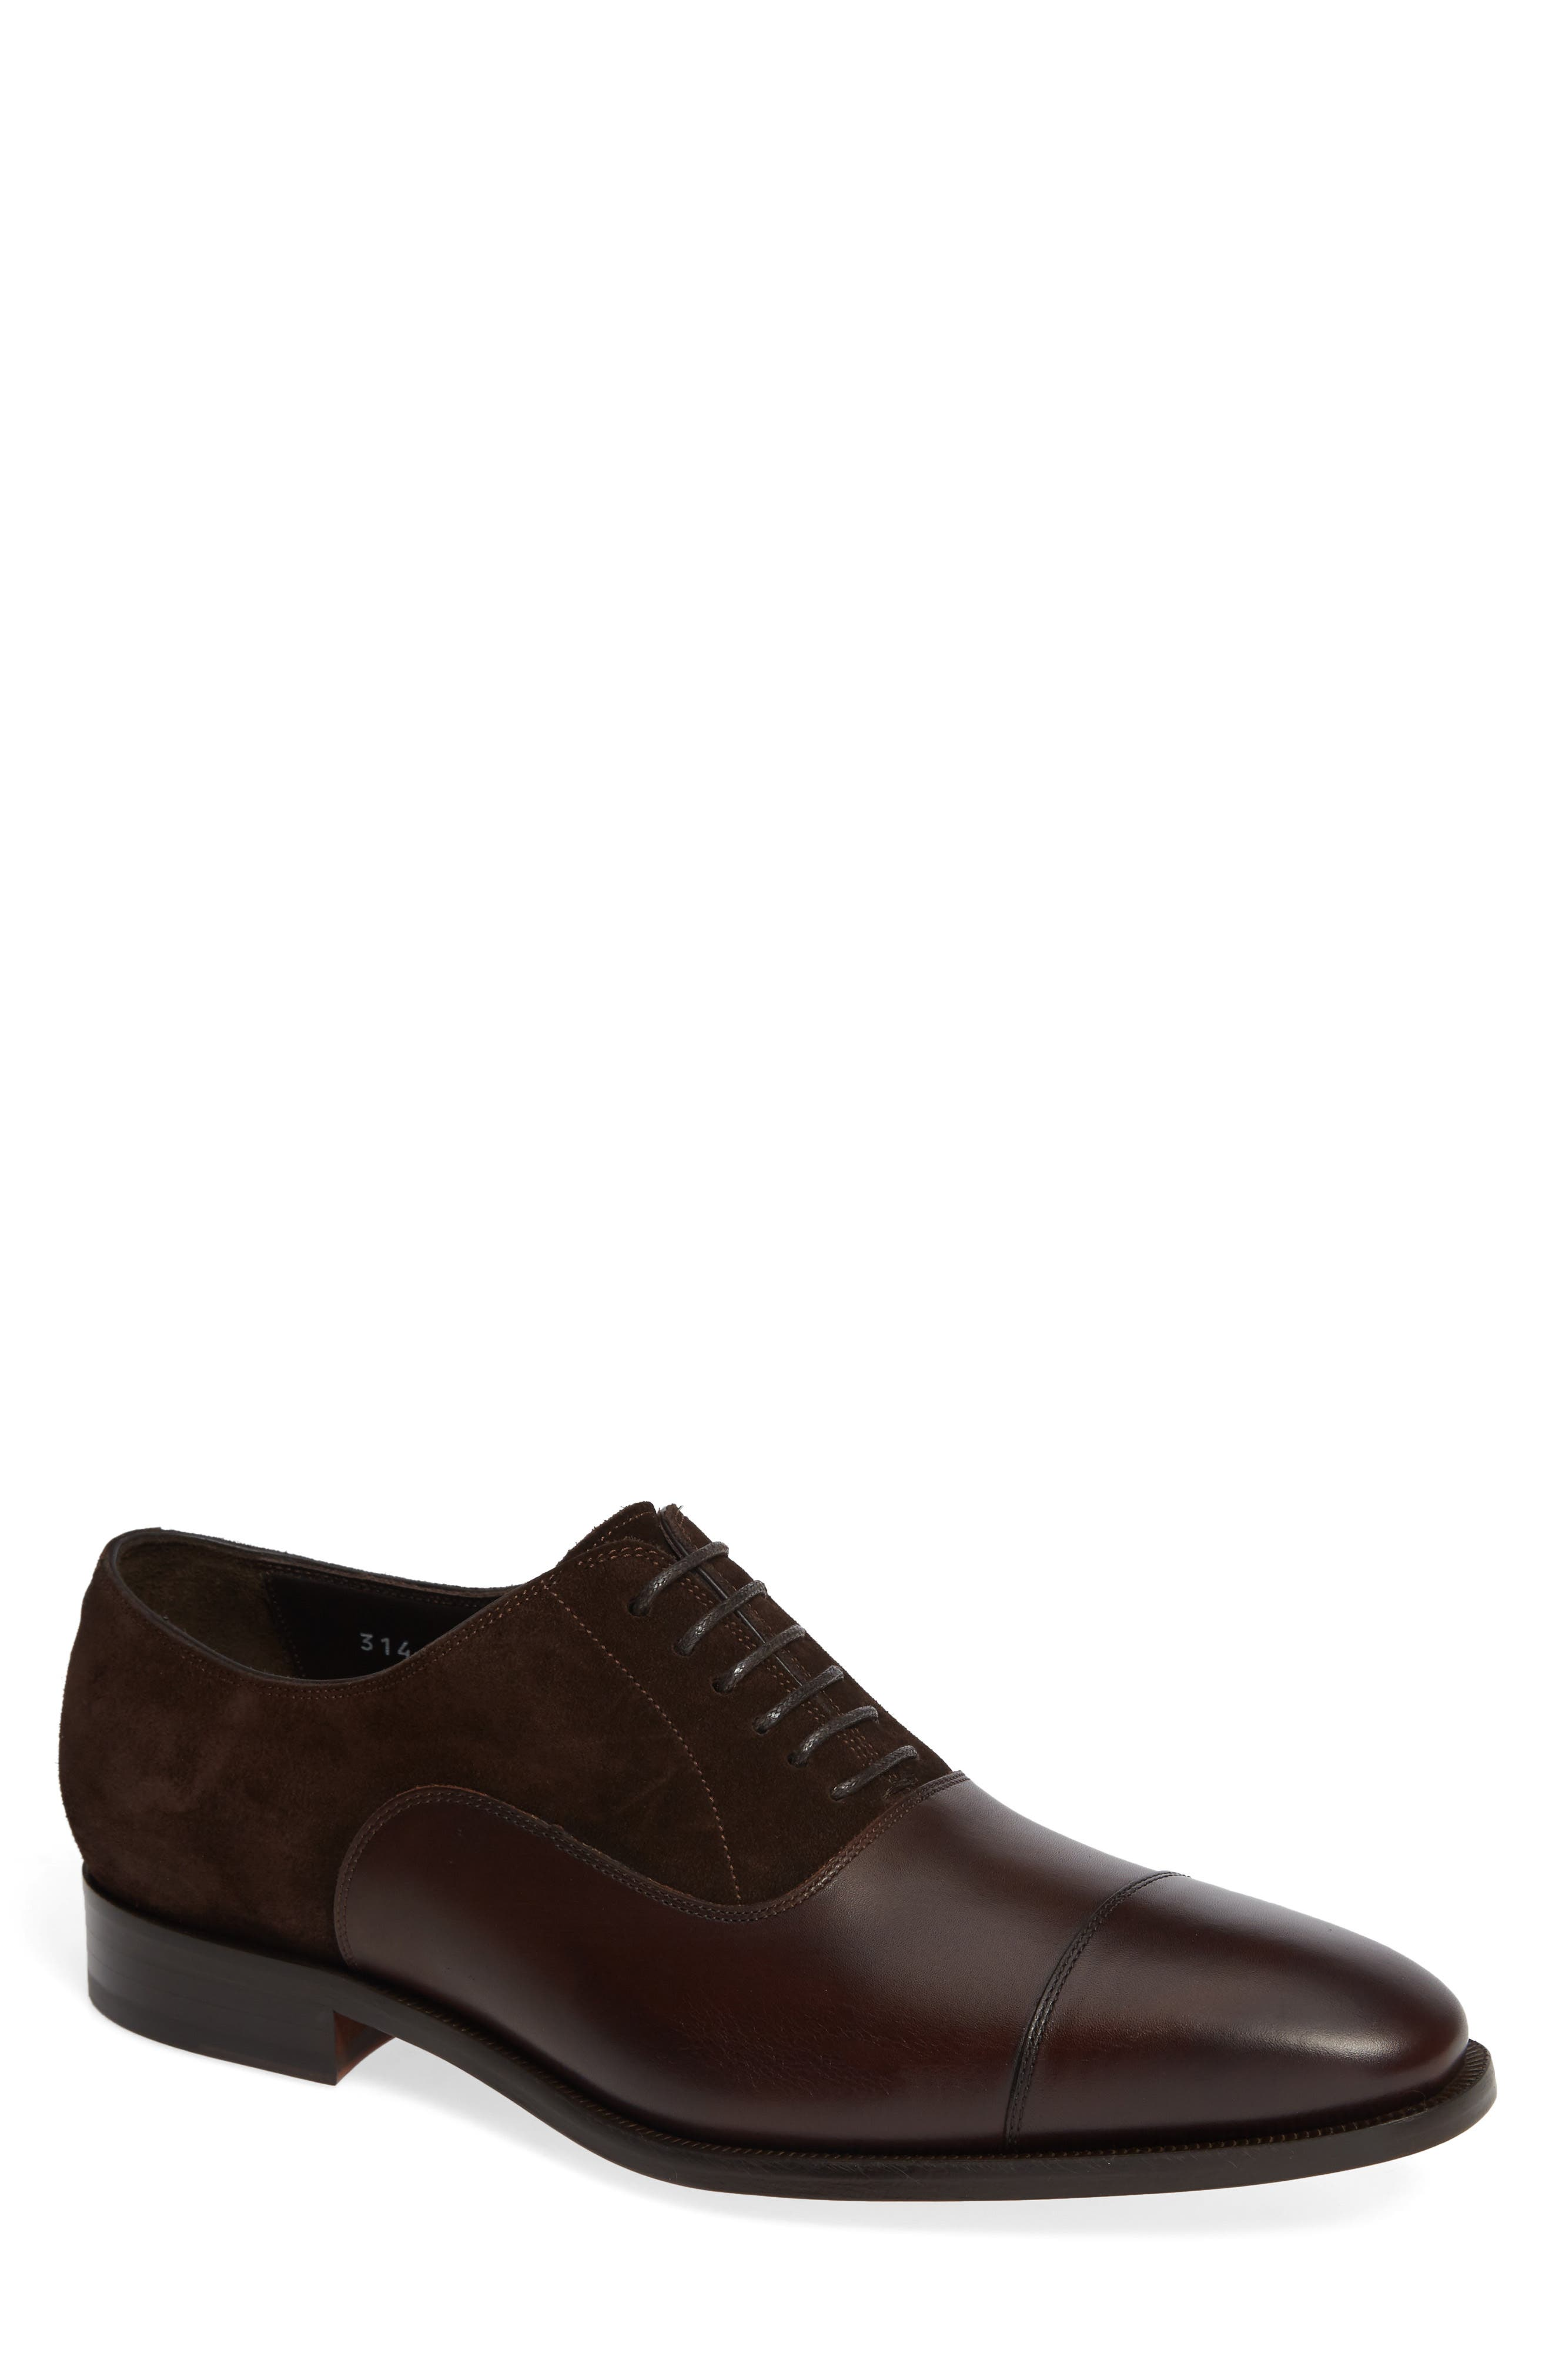 Amadora Cap Toe Oxford,                             Main thumbnail 1, color,                             BERRY/ BROWN LEATHER